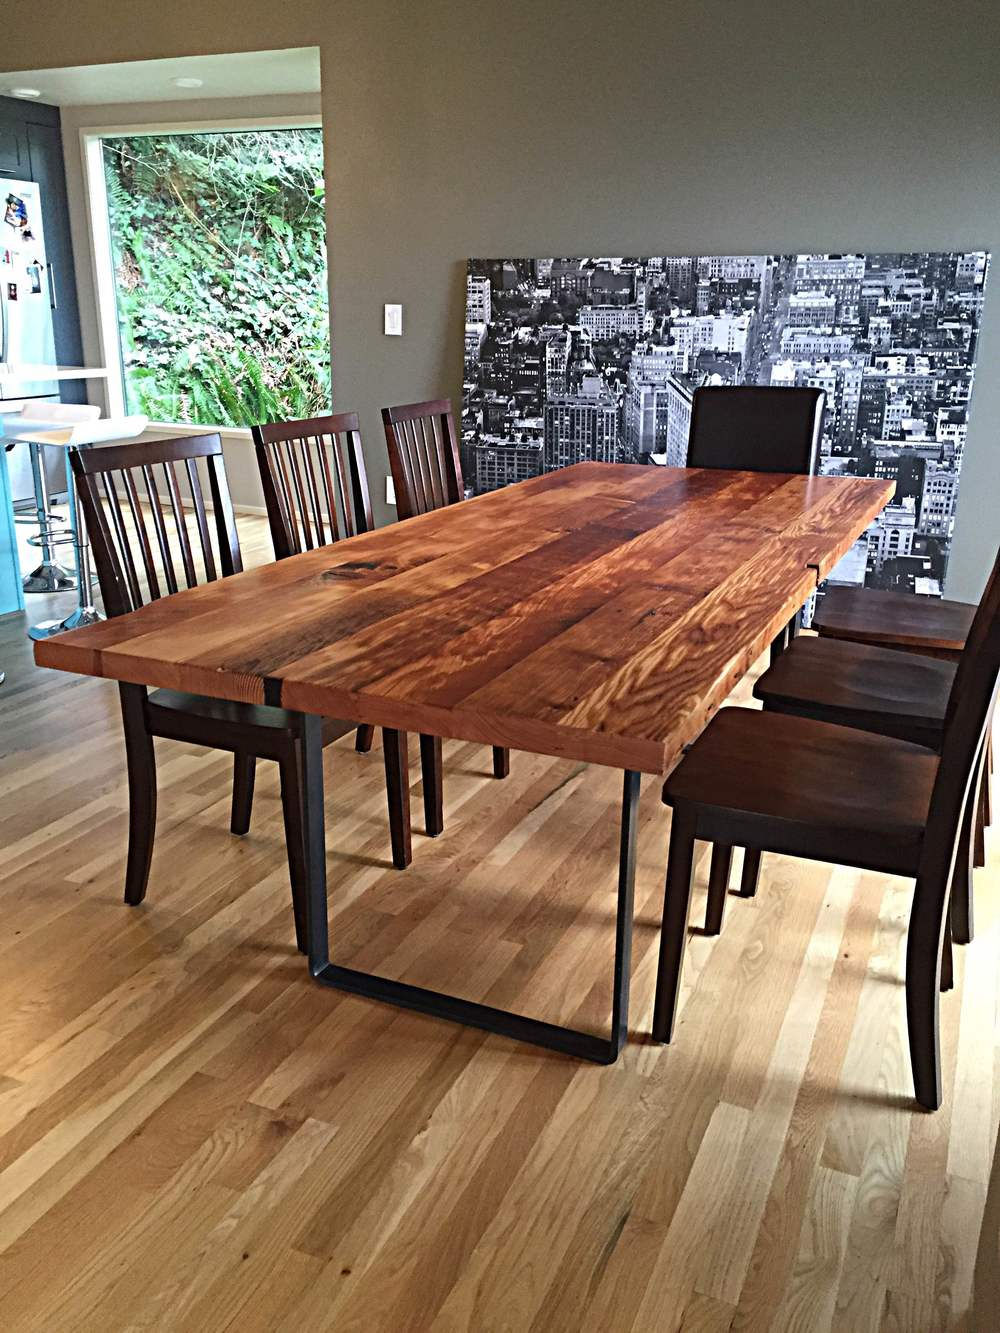 Woodcraft & Learn More About Woodcraft\u0027s Reclaimed Wood Dining Tables